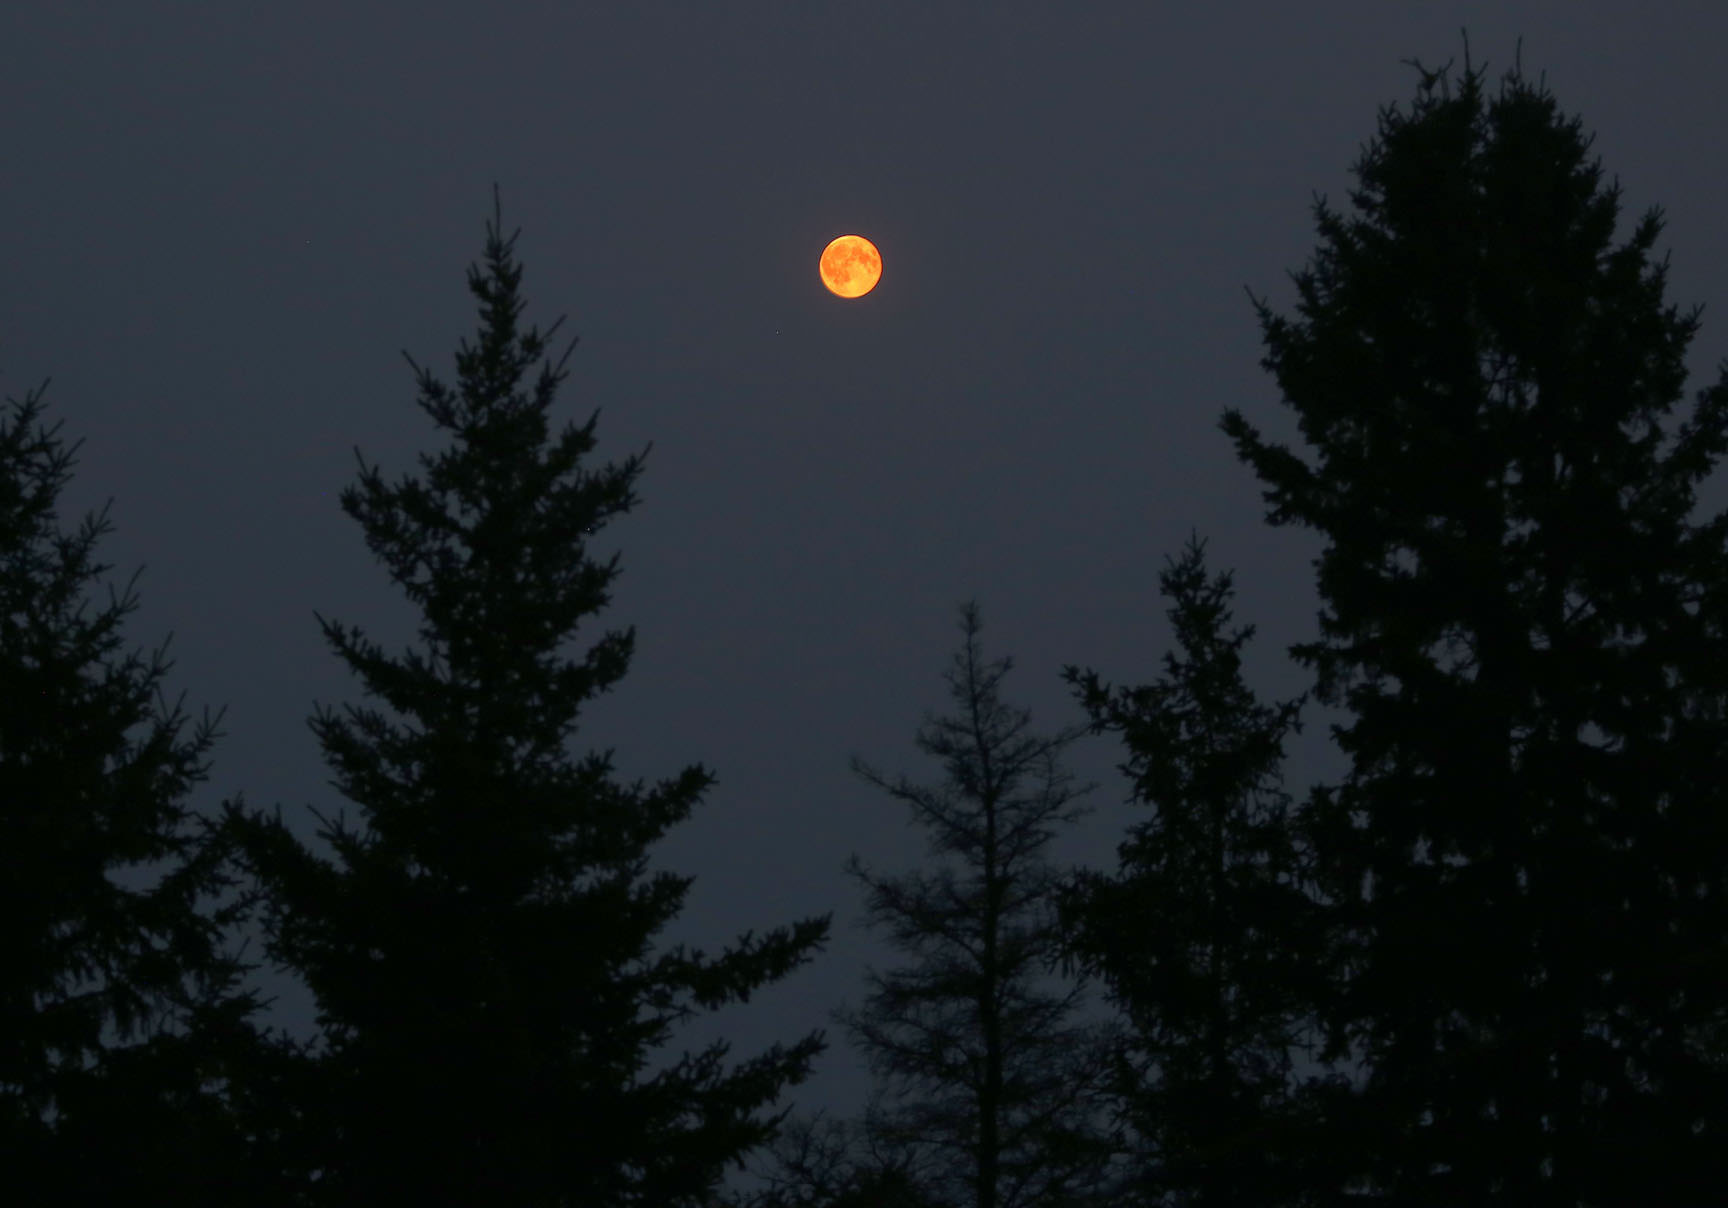 The Full Moon at 10:30 p.m. last night (Aug. 30). Even at 25 altitude, it glowed a deep, dark orange due to heavy smoke from western forest fires. Credit: Bob King